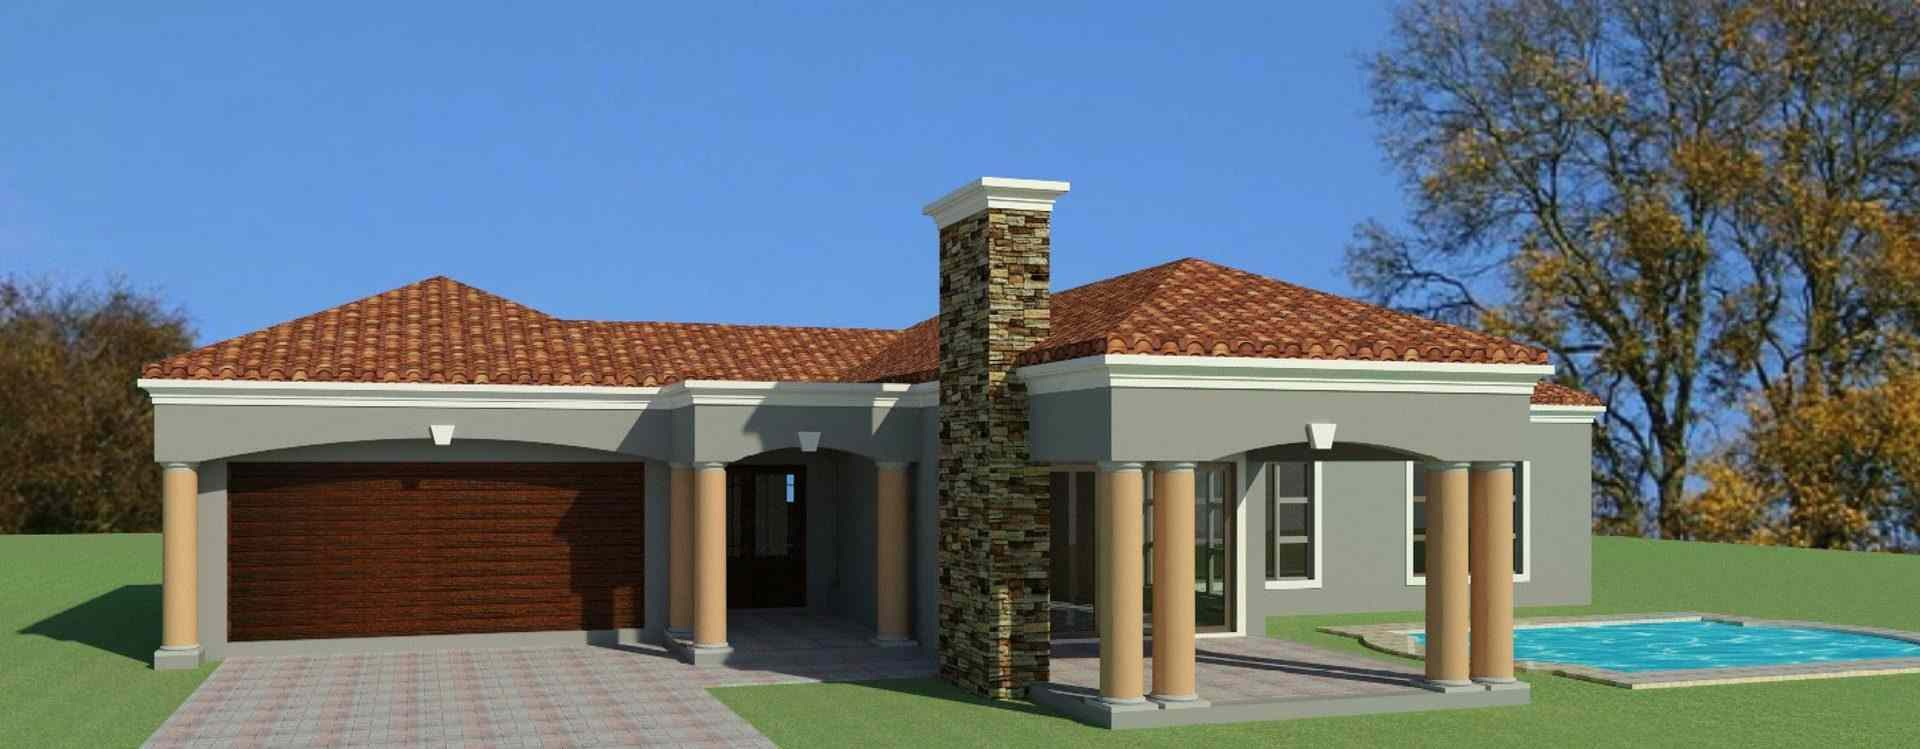 3 bedroom house plan design in South Africa; single storey house plan design, Tuscan building plan, Tuscan architecture design, three bedroom single storey house plan, House Plans South Africa Nethouseplans house floor plans, small house plans with pictures, modern house plans, 1 story house designs plans; 198 sq meter modern 3 bedroom home design; house plans pdf downloads; tiny house plans